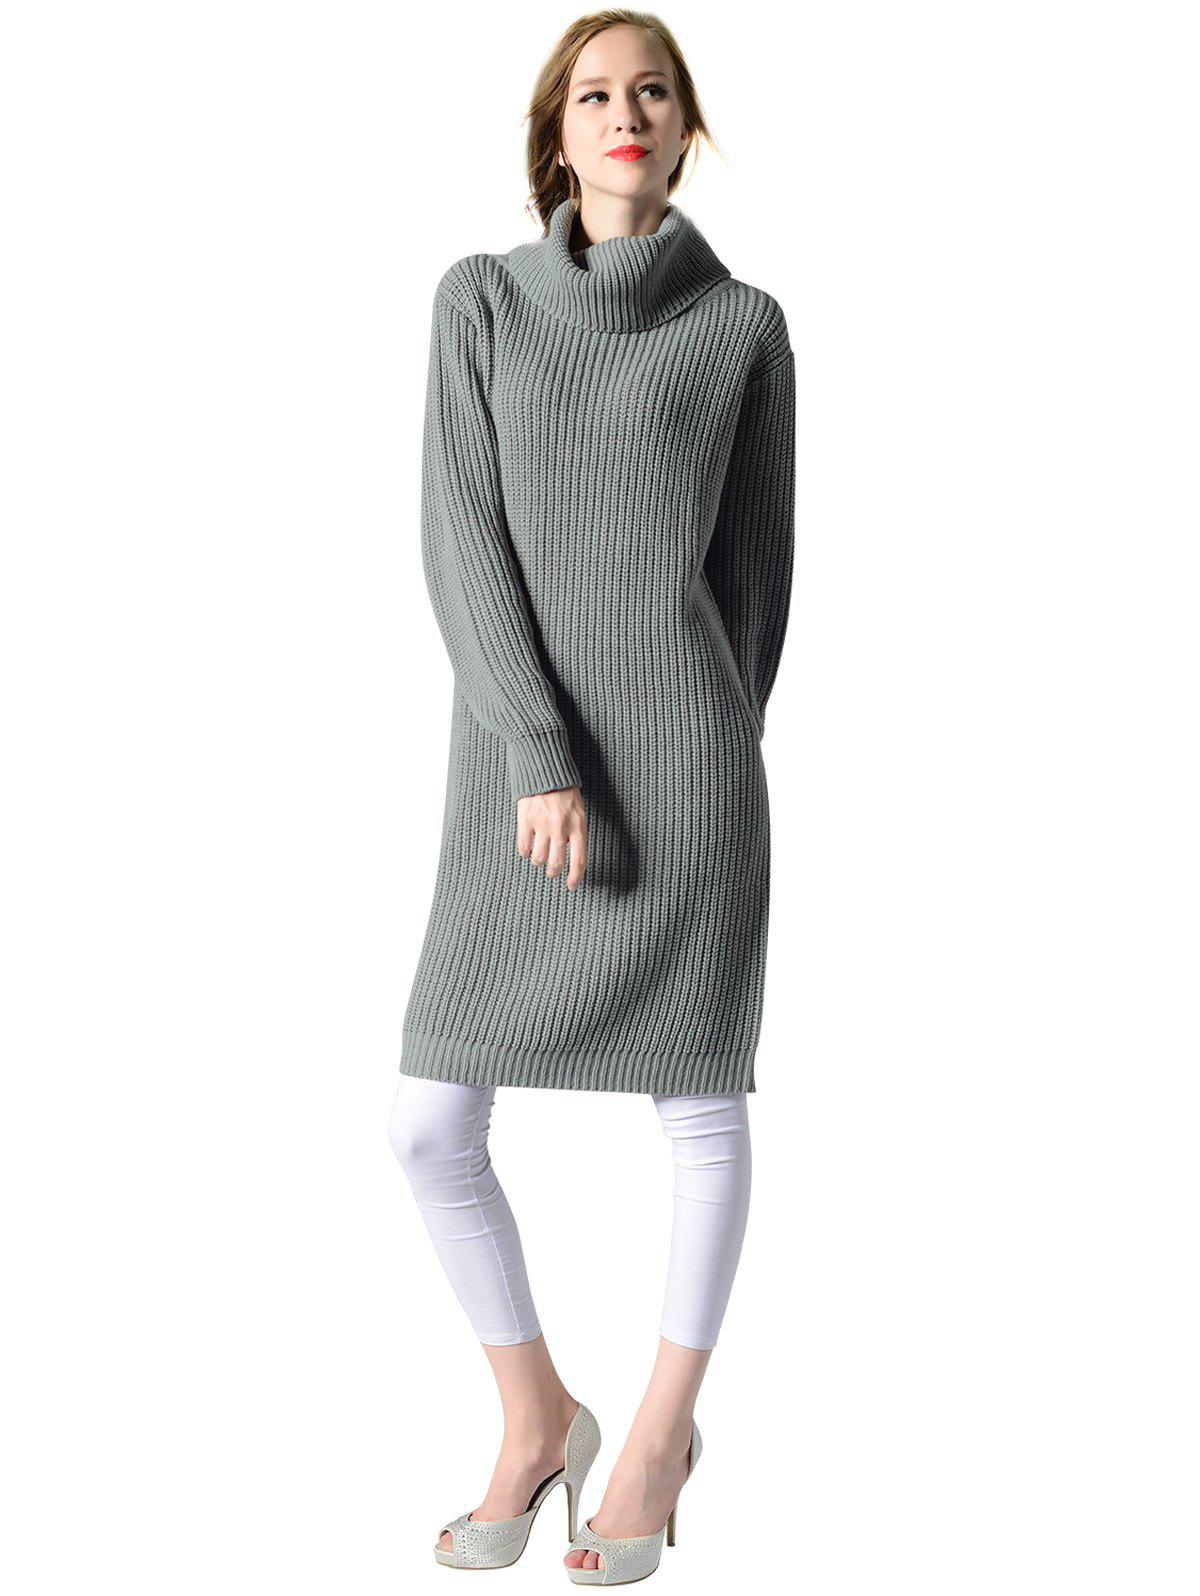 Affordable Women's Turtleneck neck  Long sleeves rib kniting  casual Basic  sweater dress